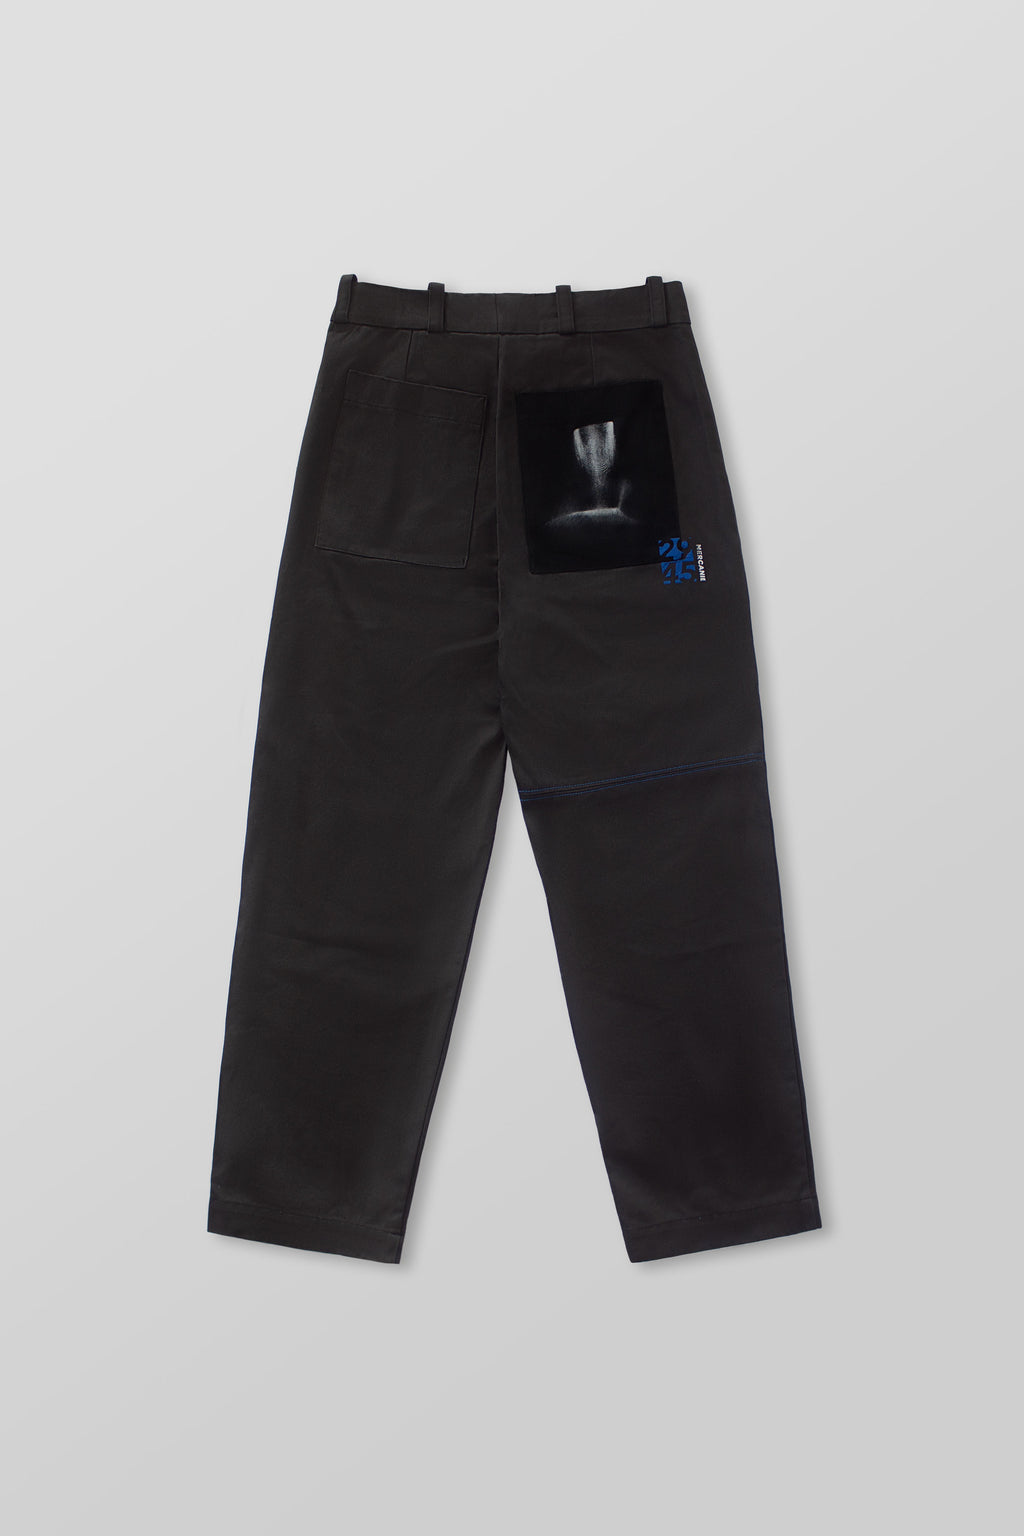 'The Deepest Light' Trousers (Shadow Gray)